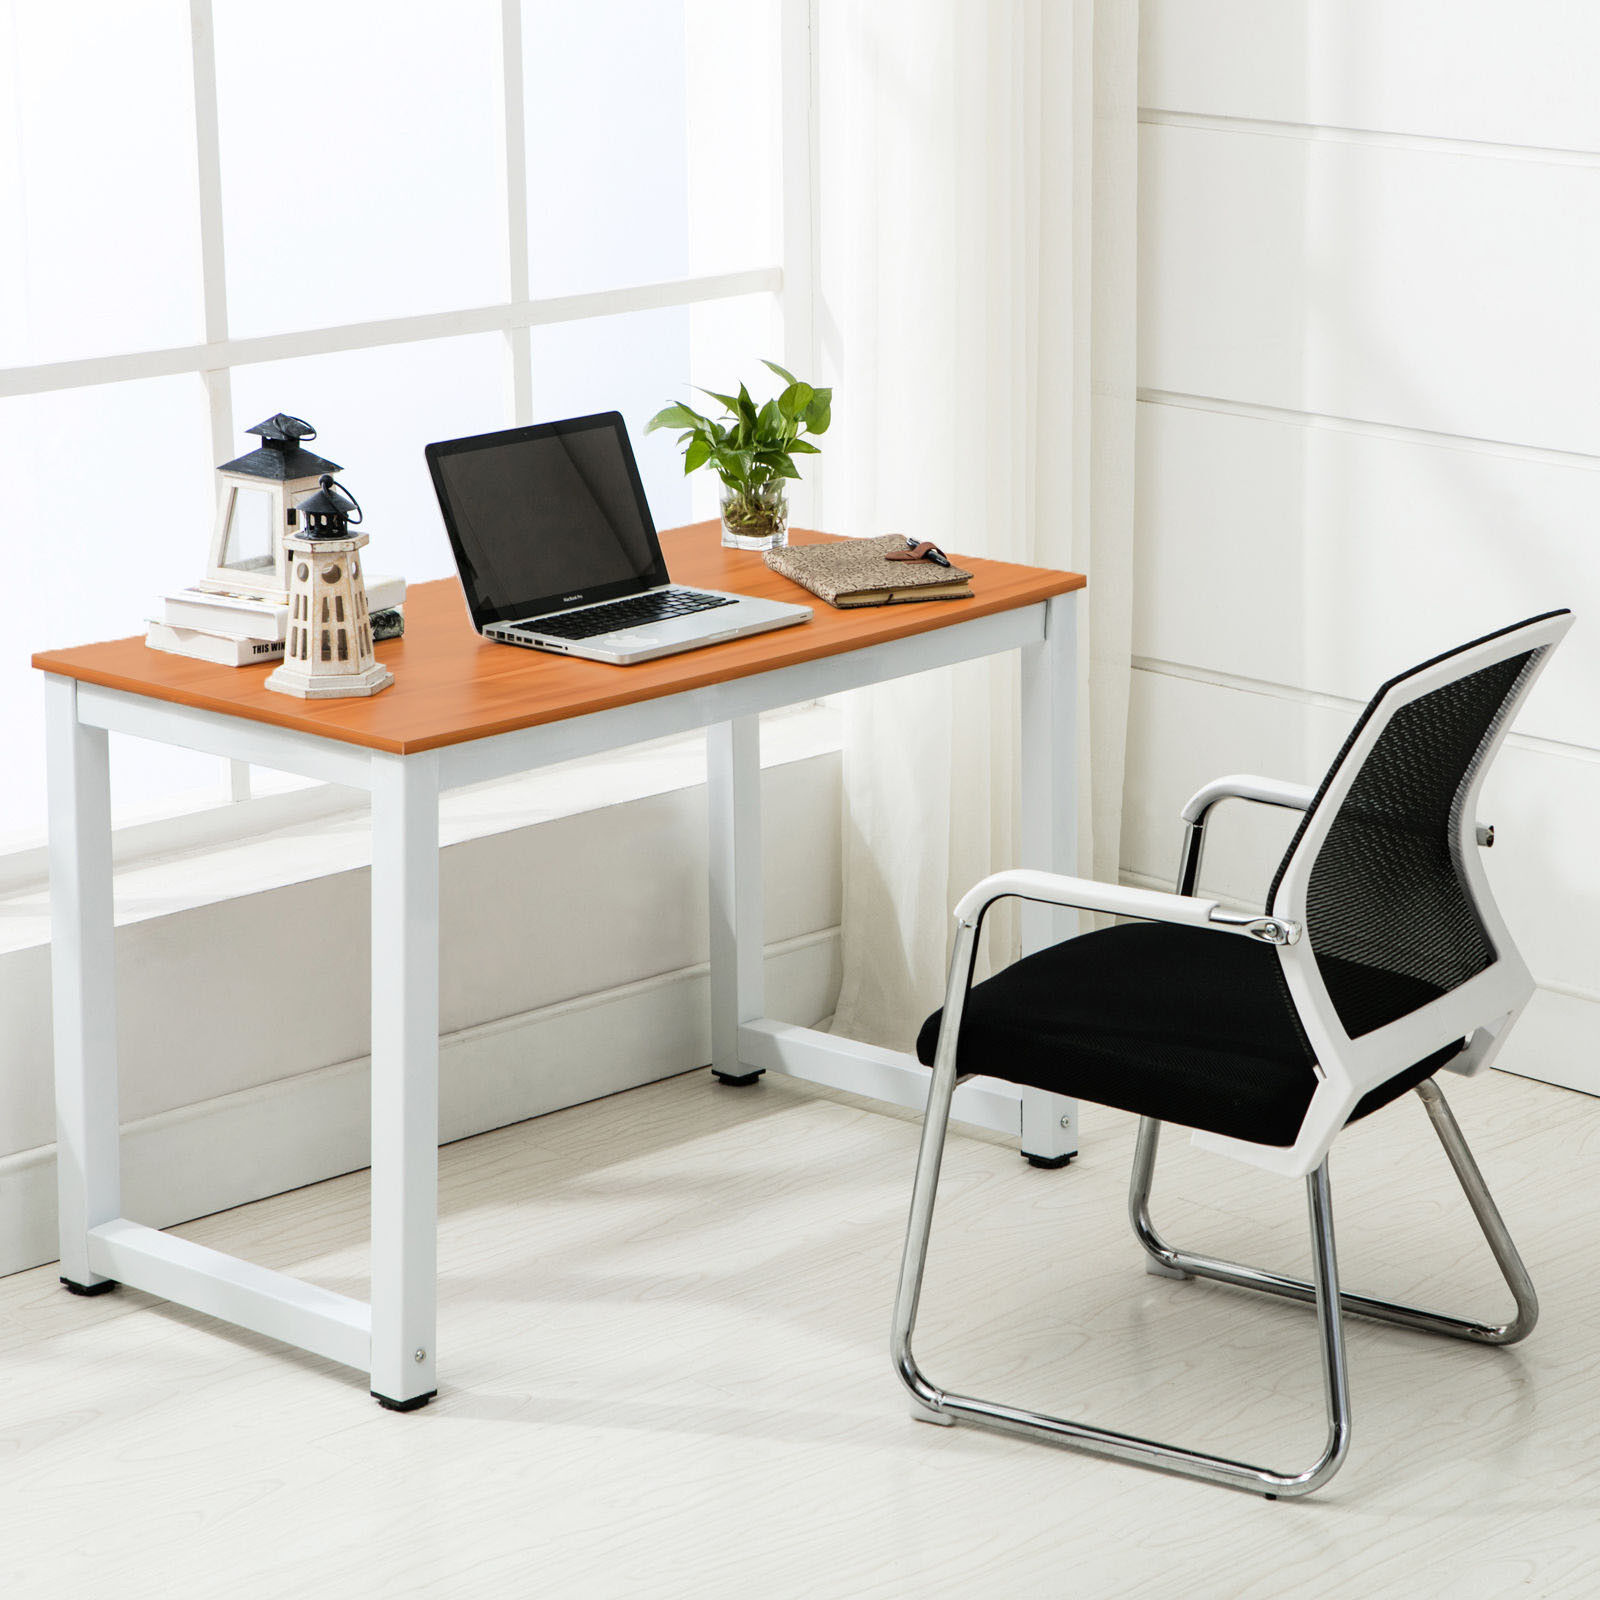 If You Are Looking For A Desk Your Office This L Shaped Desktop Computer Might Be Good Choice It S Made Of High Quality Mdf And Iron